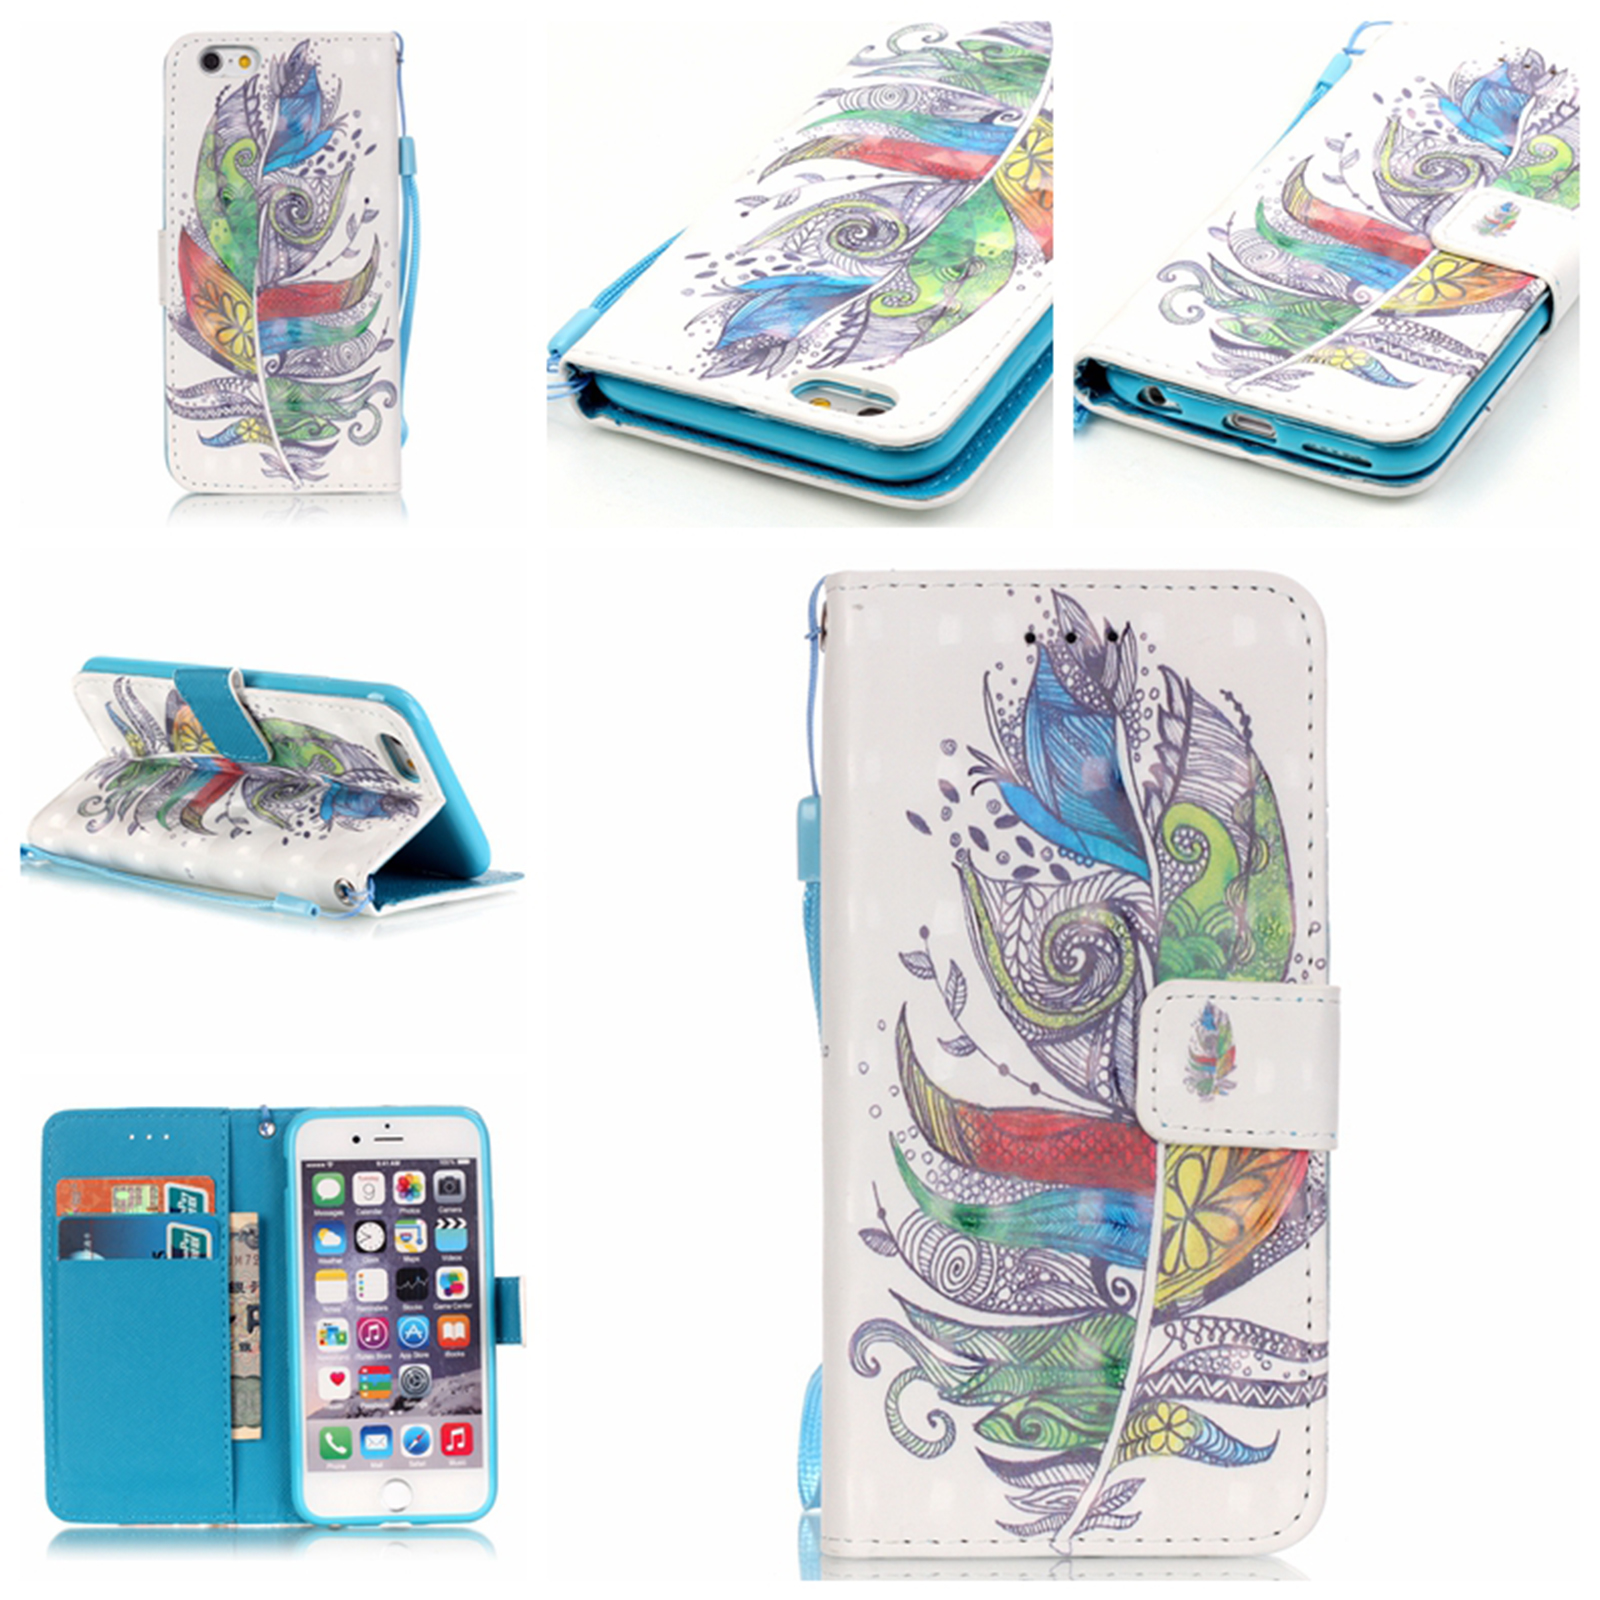 Magnetic-Pattern-Flip-Leather-Wallet-Card-Stand-Case-Cover-For-iPhone-8-7-Plus-X